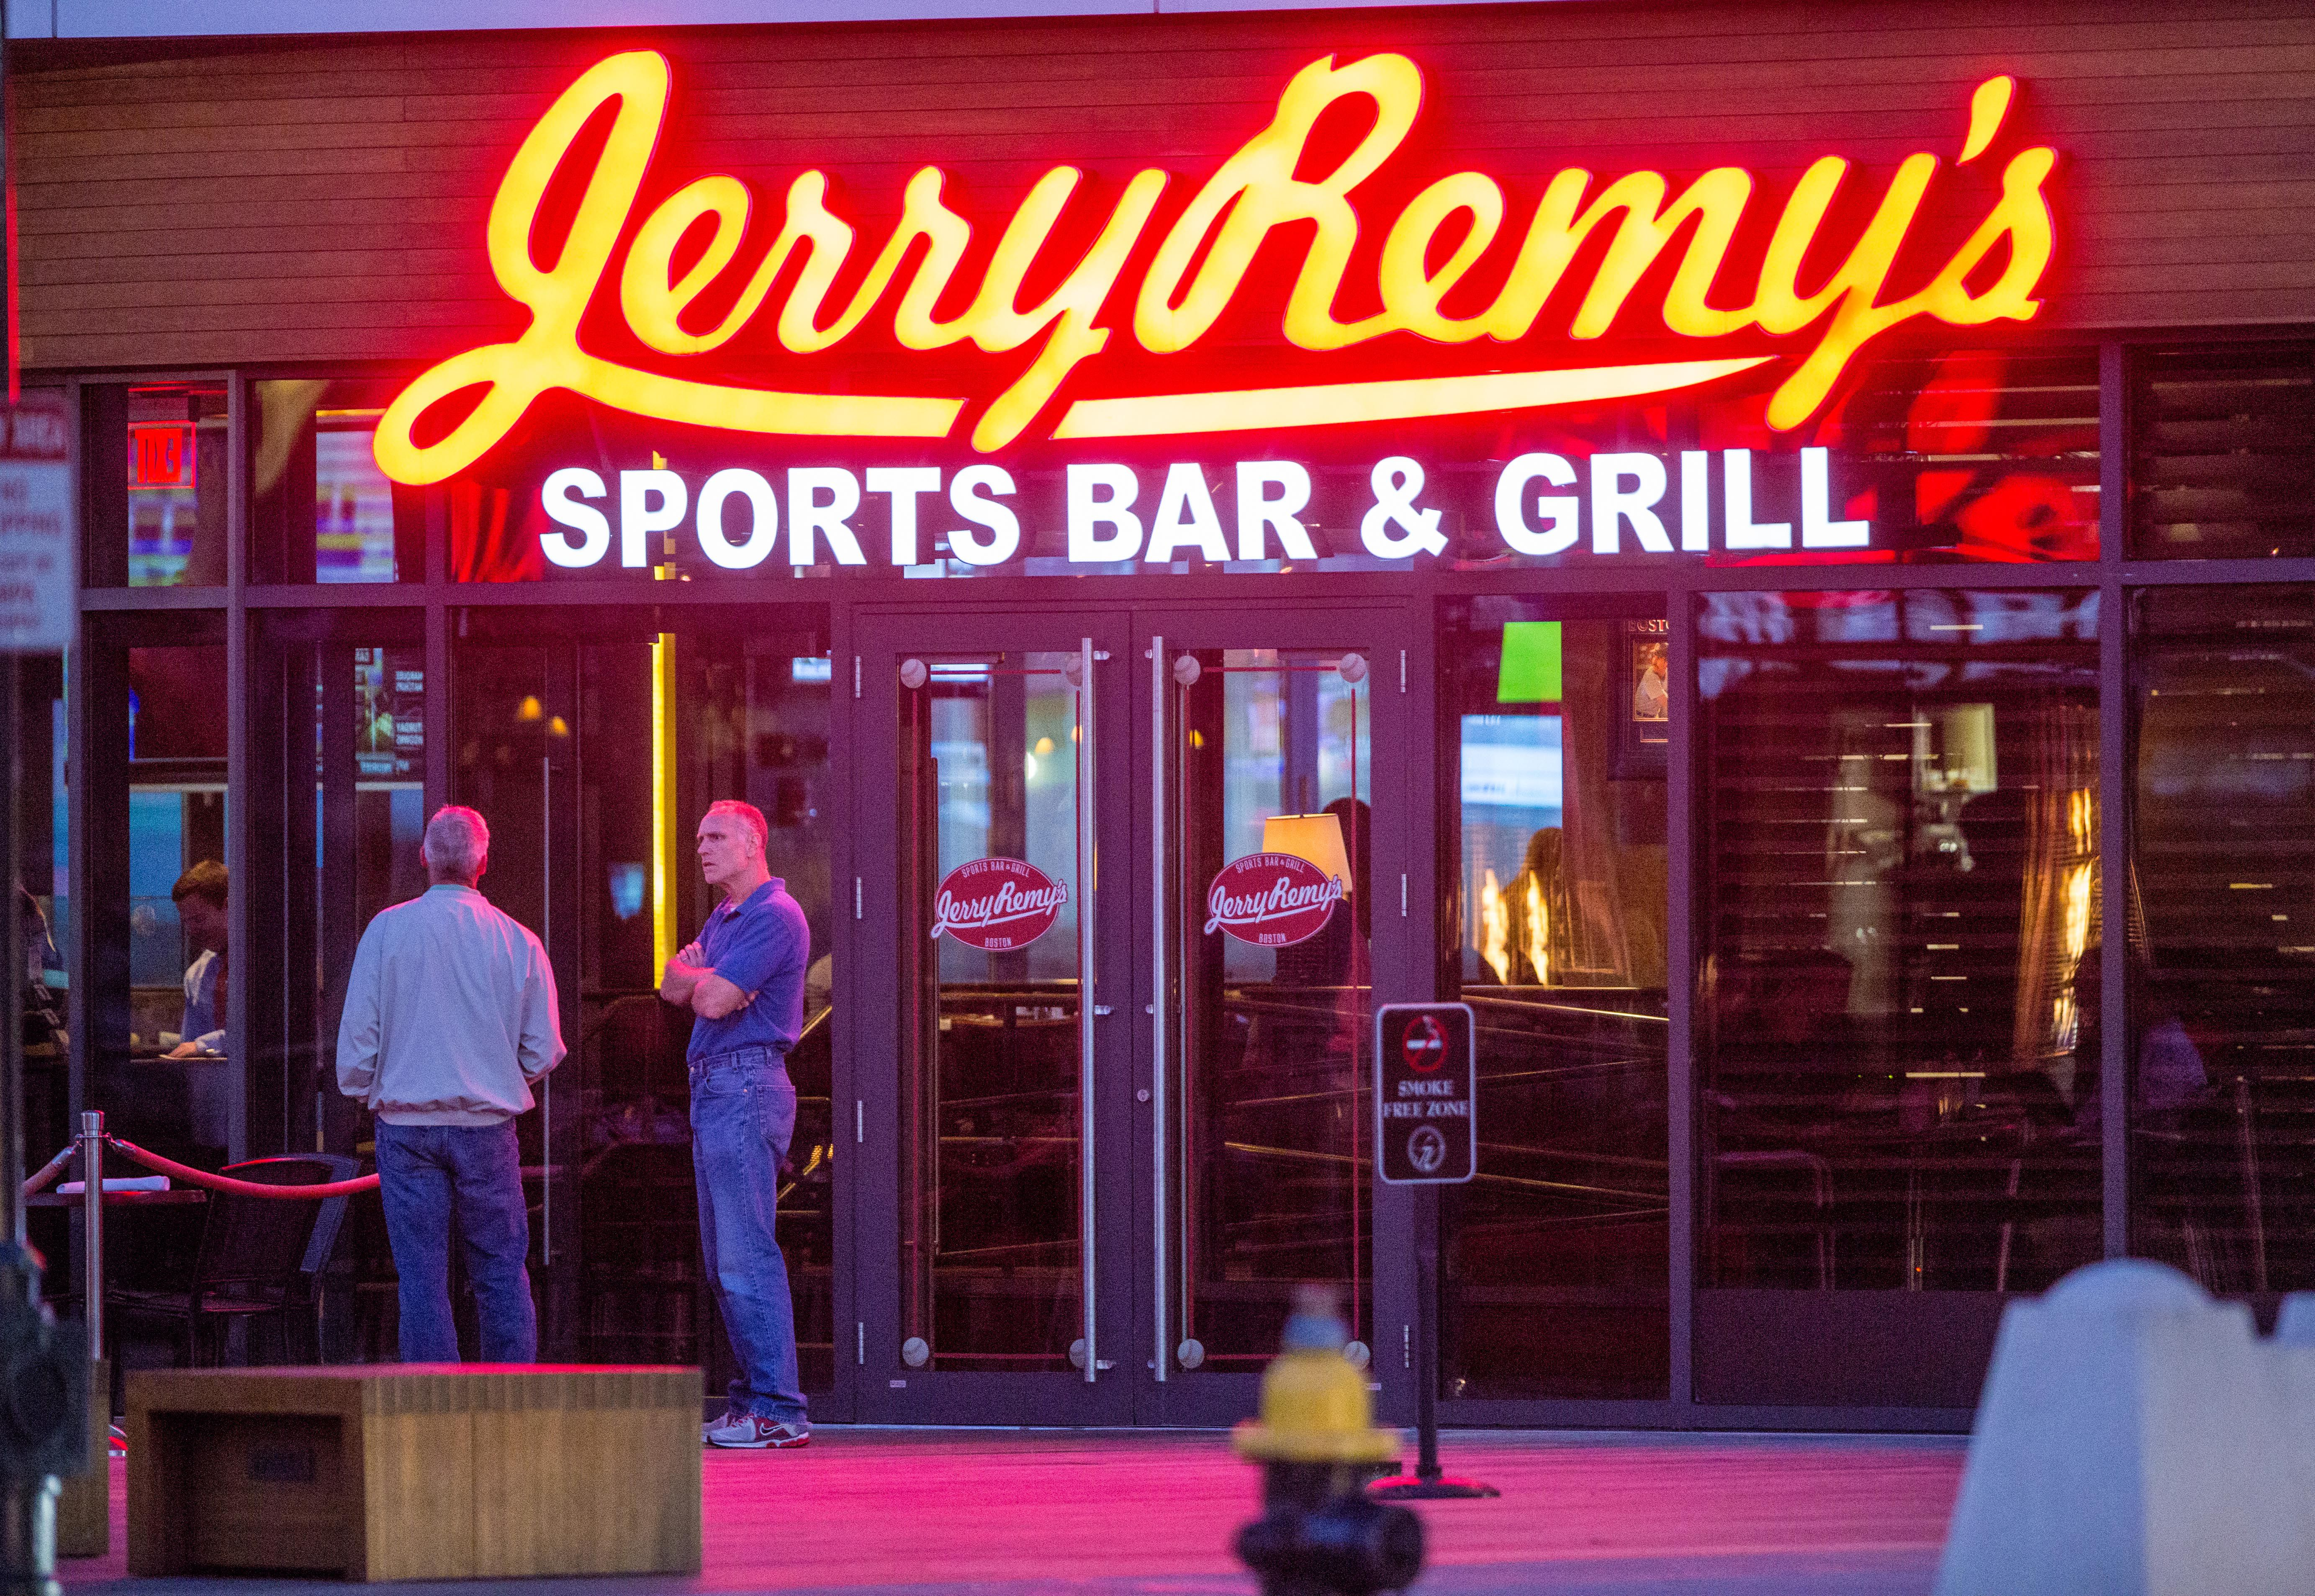 Boston bars charged with violating 'pay-to-play' rules - The